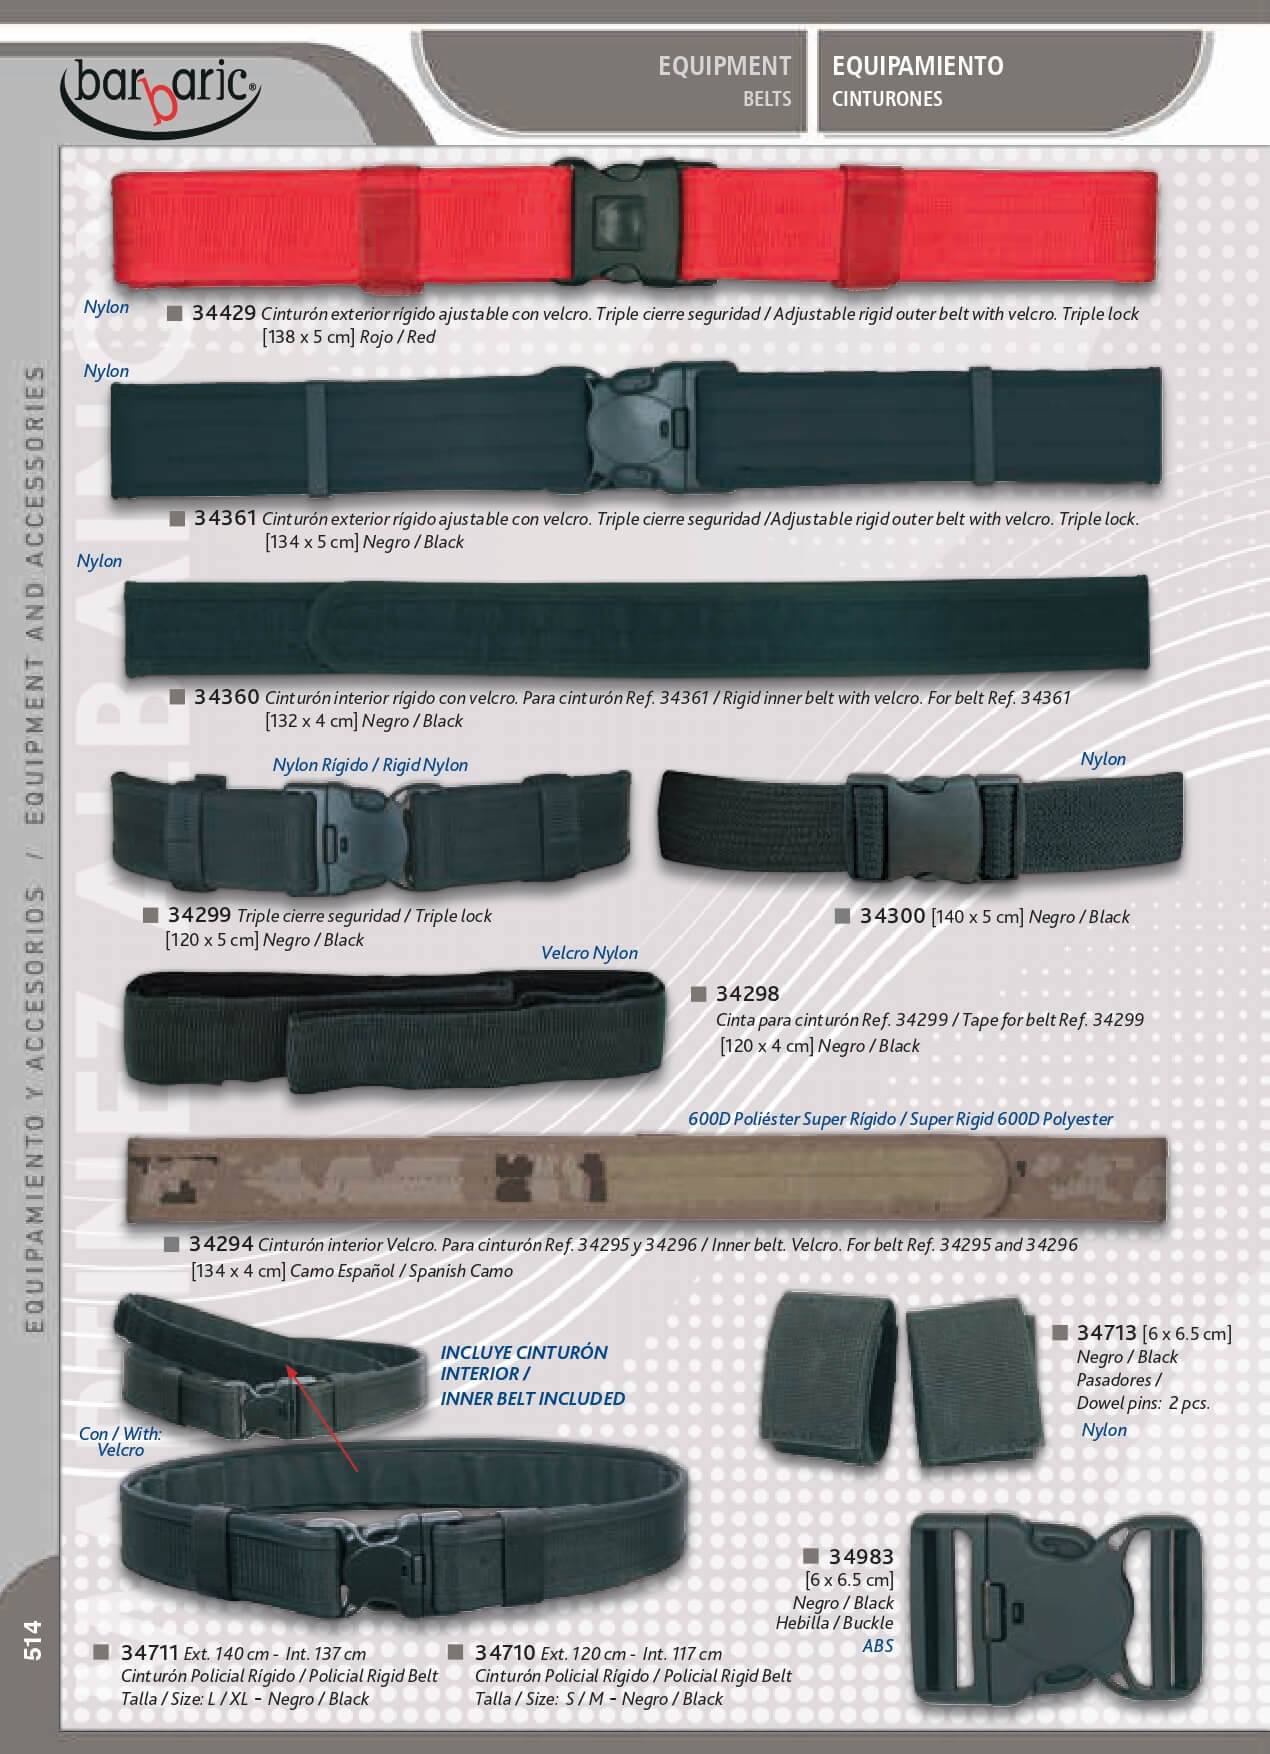 34429 - EQUIPMENT BARBARIC Barbaric - objects personal belts - Cutlery 8331eb393e49